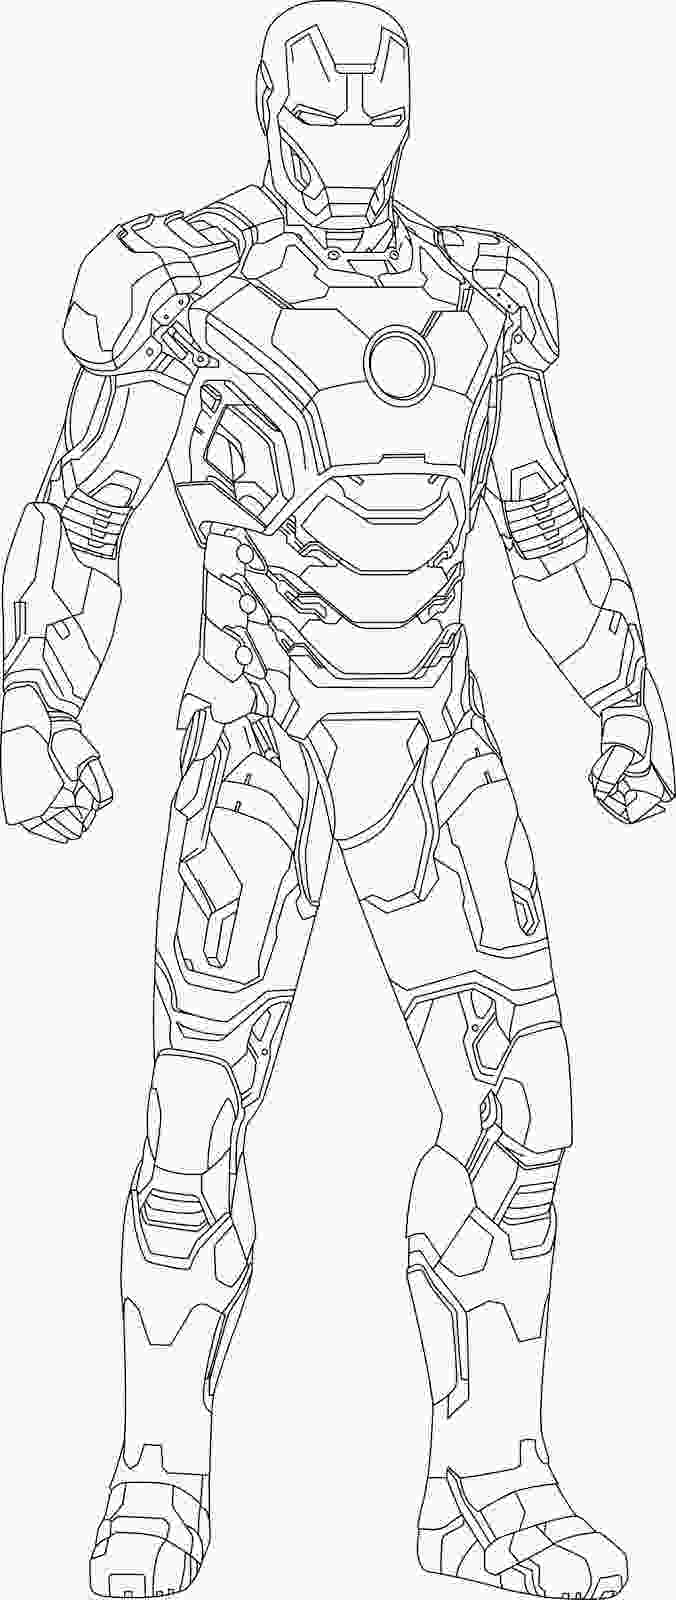 free printable avengers coloring pages coloring pages for kids free images iron man avengers